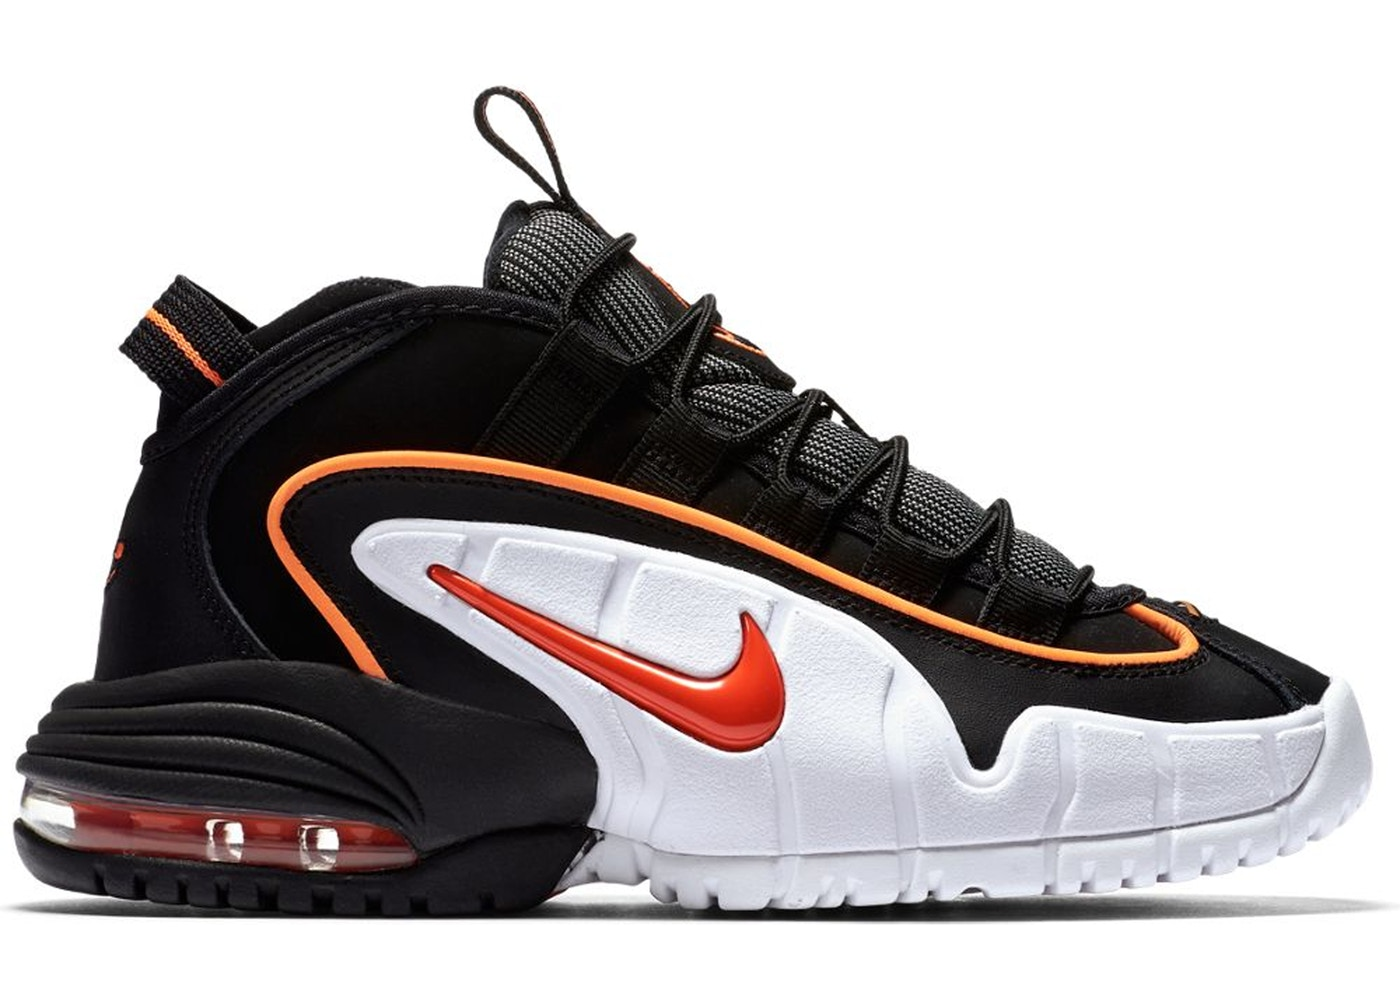 best loved 6cdc8 d2fd4 Air Max Penny Black Total Orange (GS) - 315519-006